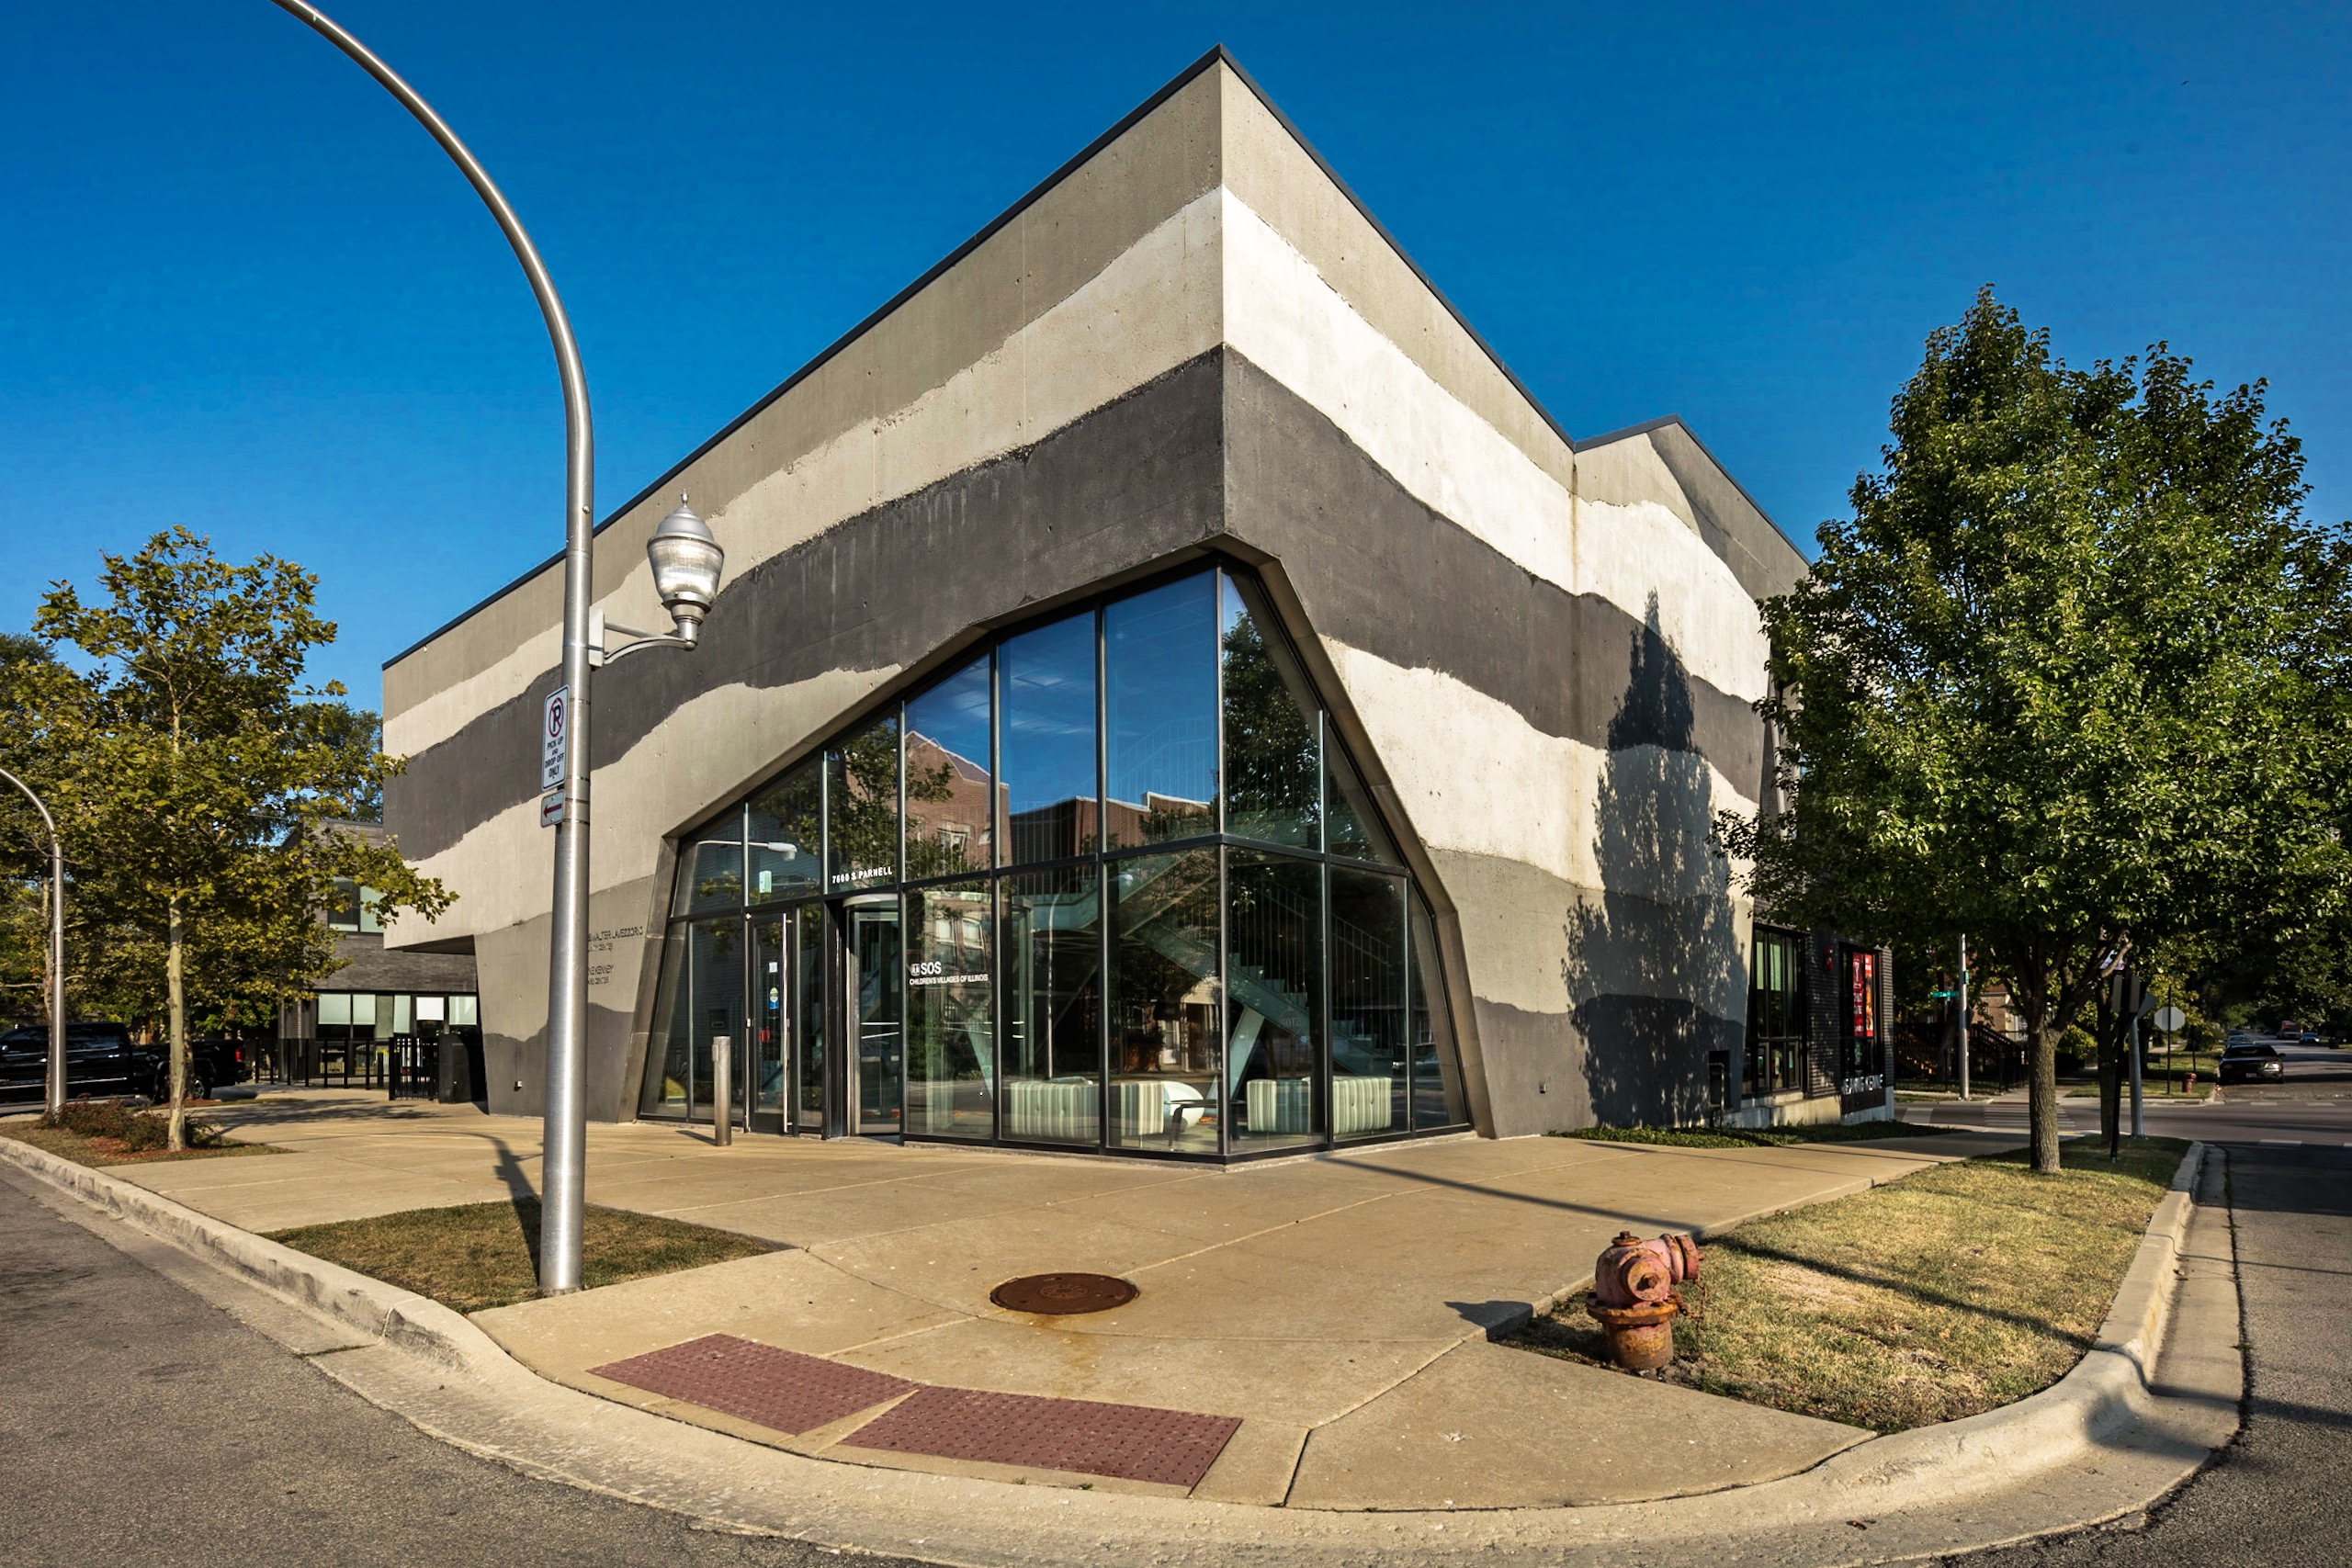 Lee says the exhibit offers 'a complimentary look' of South Side architecture. Shown here is the Lavezzorio Community Center at 76th Street and Parnell Avenue. (Lee Bey/DuSable Museum of African American History)